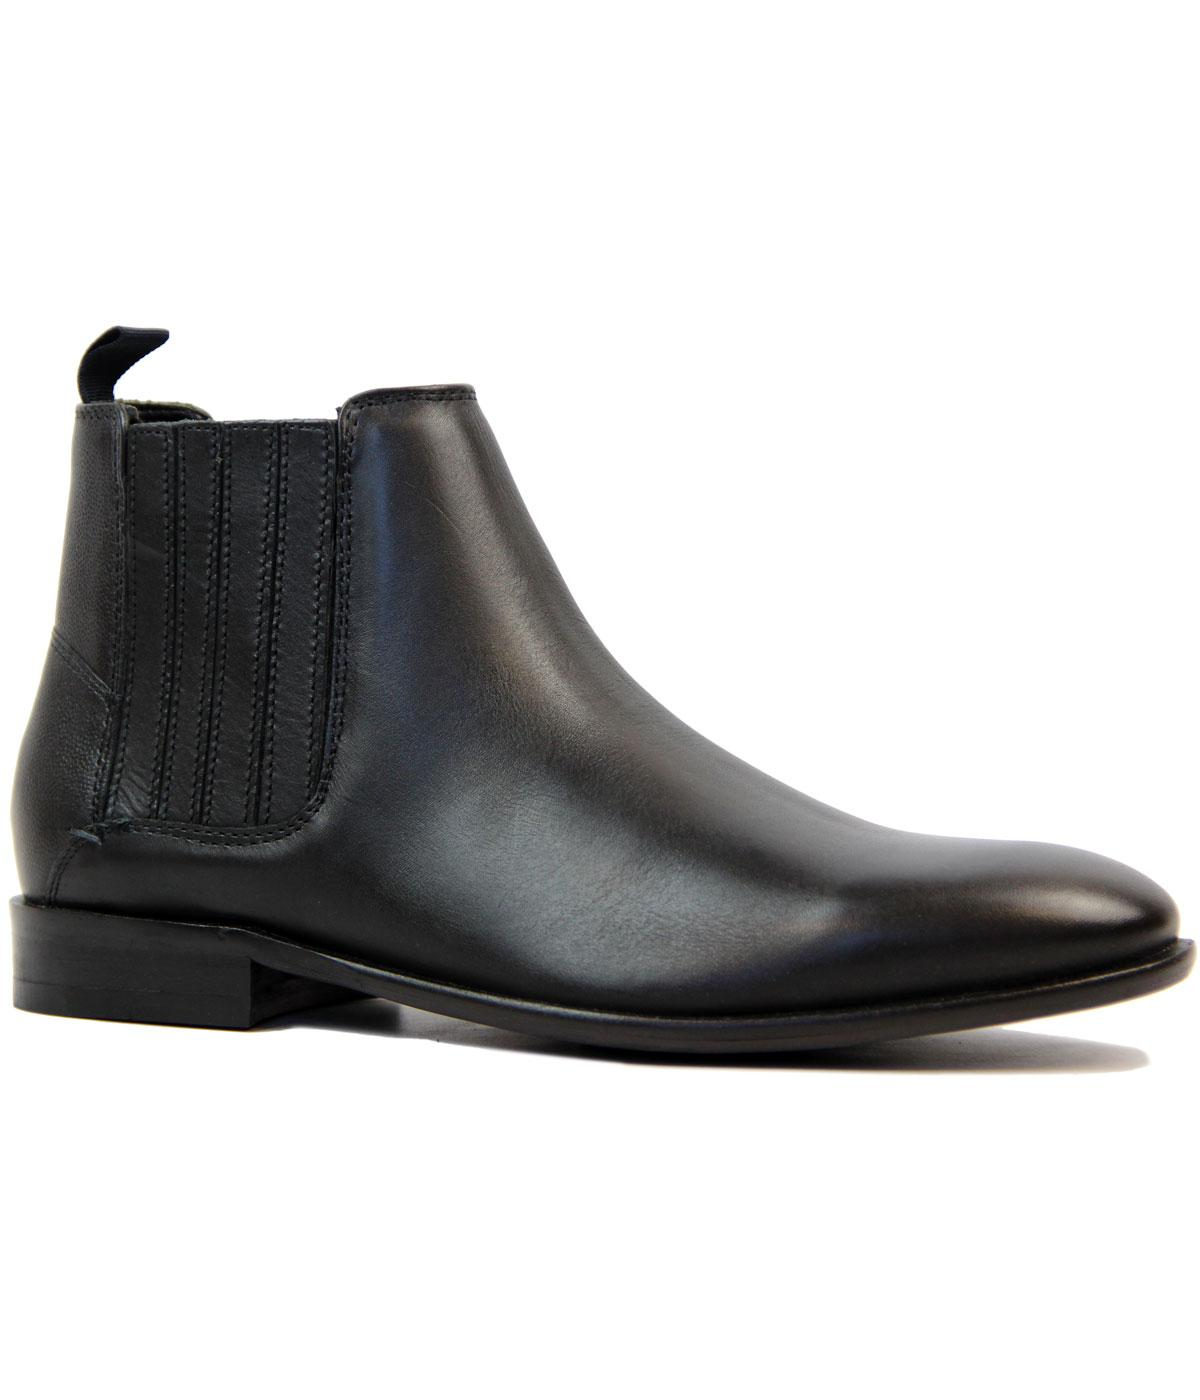 Rame BEN SHERMAN Retro Mod Leather Chelsea Boots